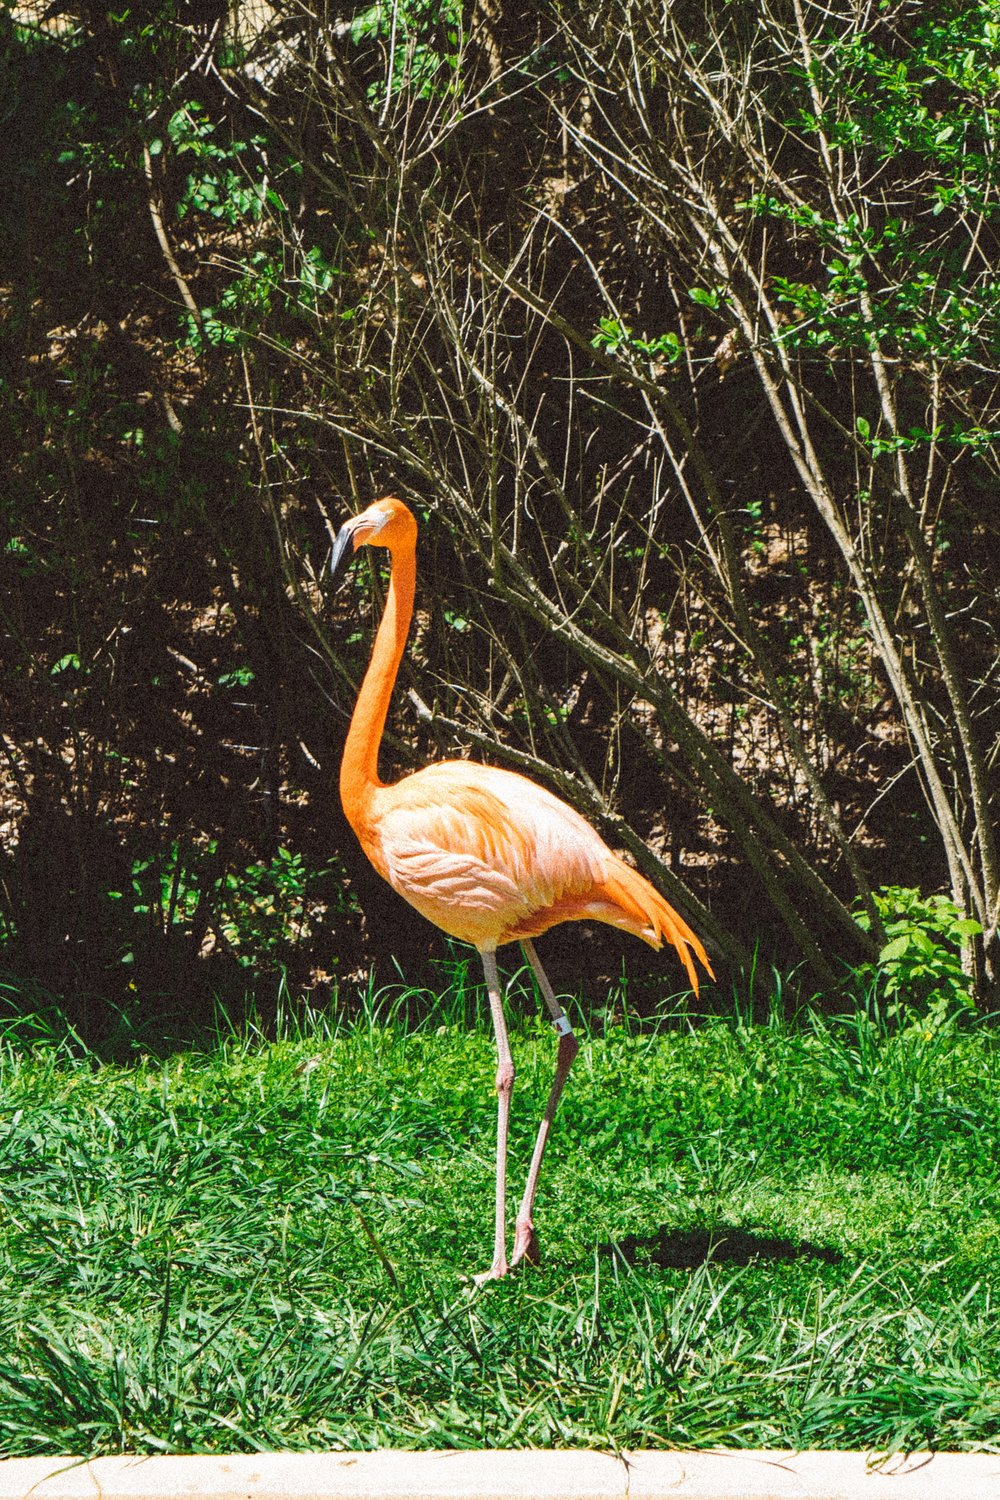 Flamingo at the Nashville Zoo. Photo by The Explorer Dad